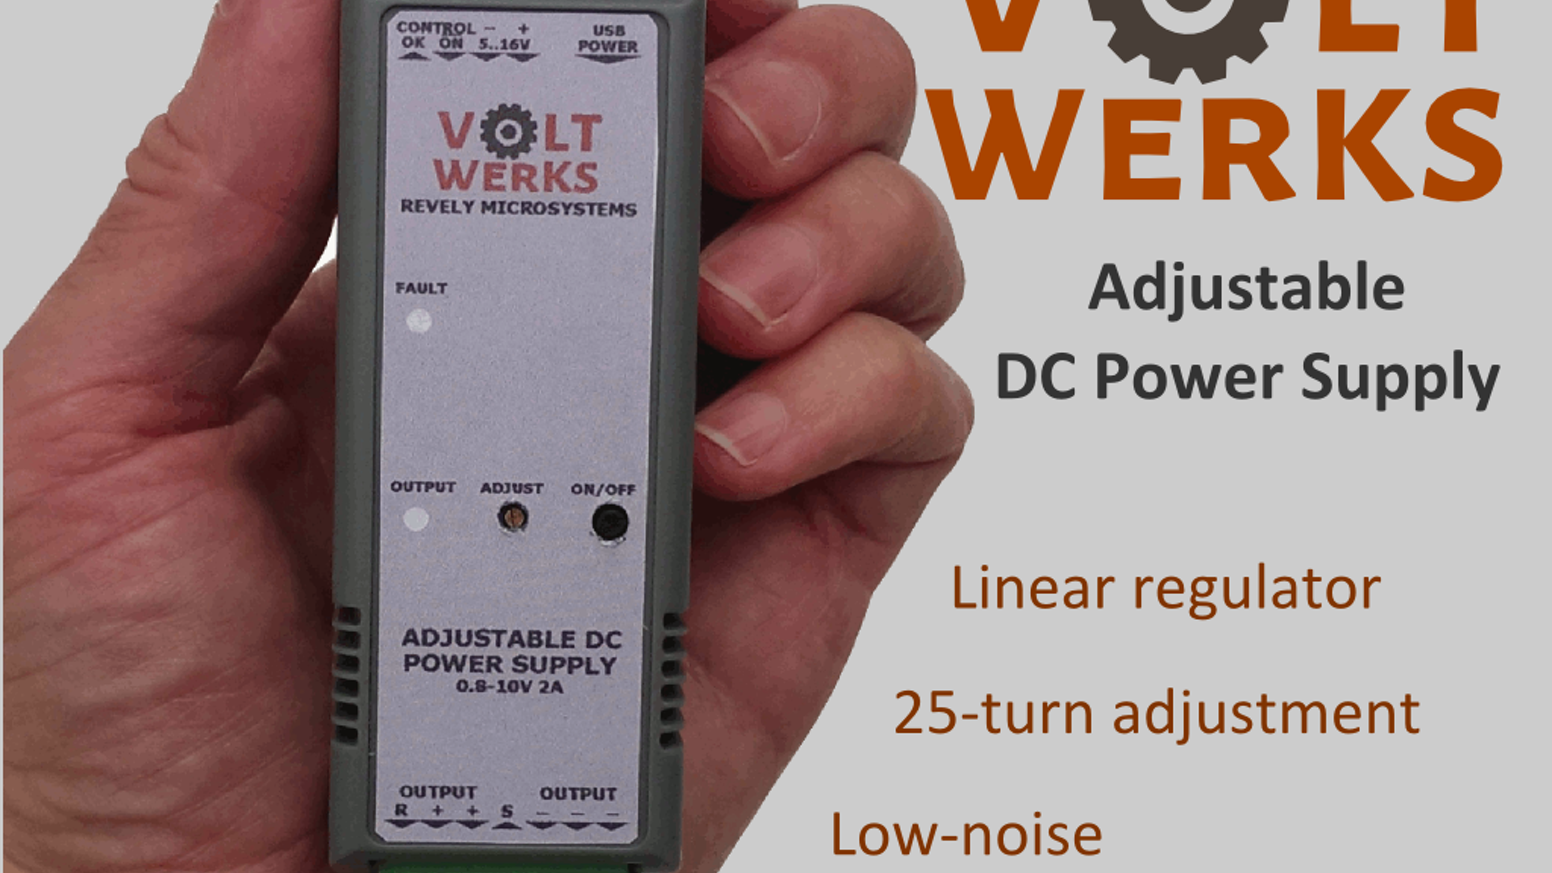 Voltwerks Precisely Adjustable Power Supply For Your Lab By Jon Very Popular Images Electronic Projects Get A Precision All Provides Low Noise 08 10v